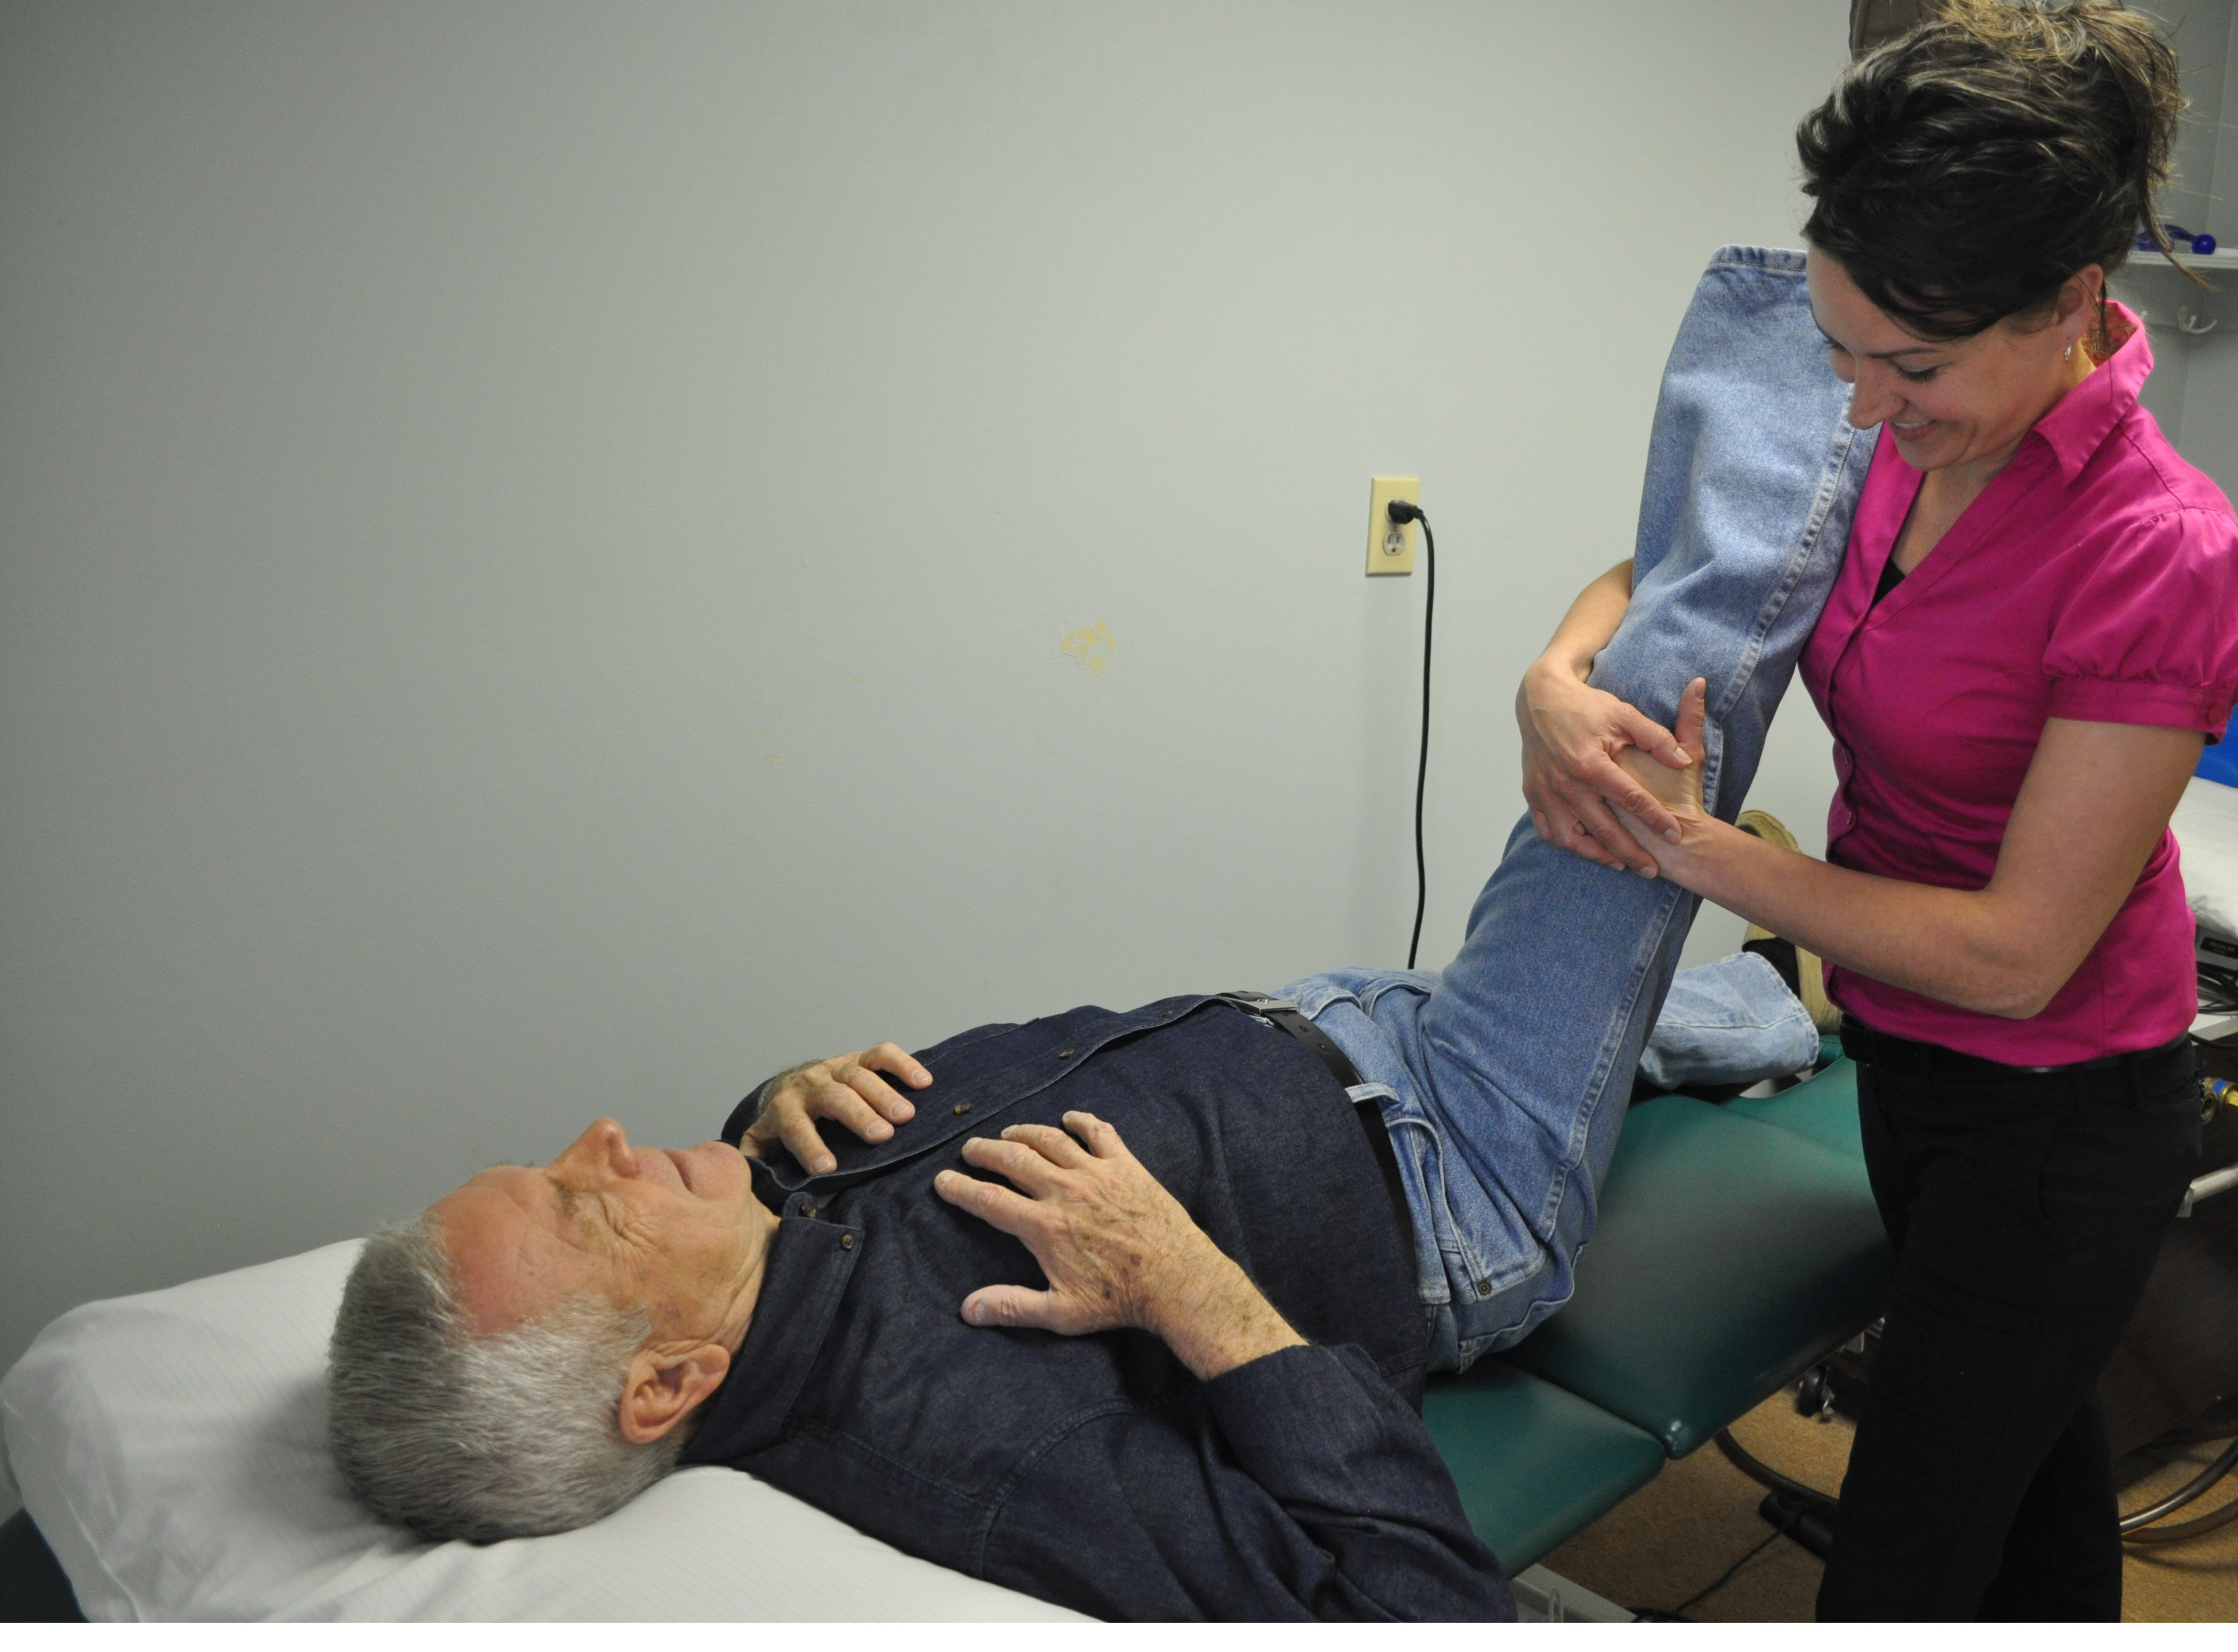 Who needs physical therapy - He Continues An Exercise Program That We Created Based On His Individual Needs Ask Your Local Pt About Safer Ways To Manage Your Pain While The Choice Is